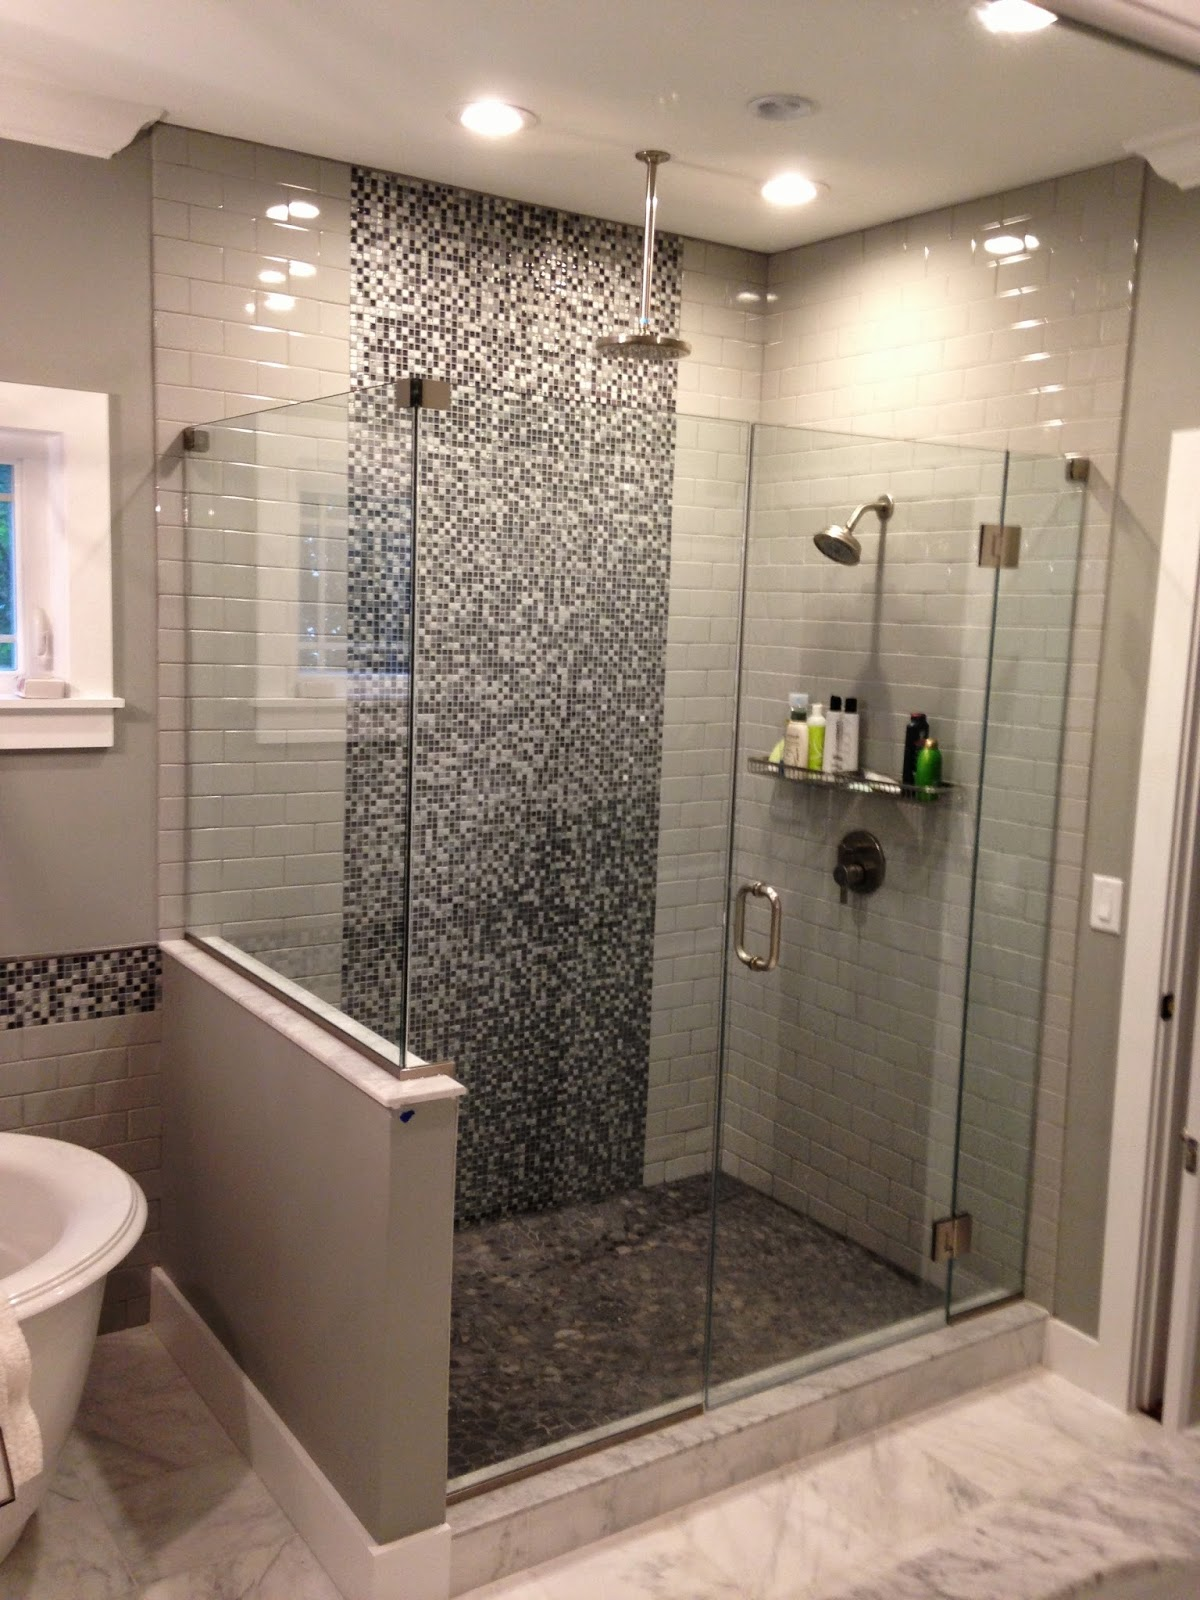 Glass tile Grey Shower rain showerhead shower head